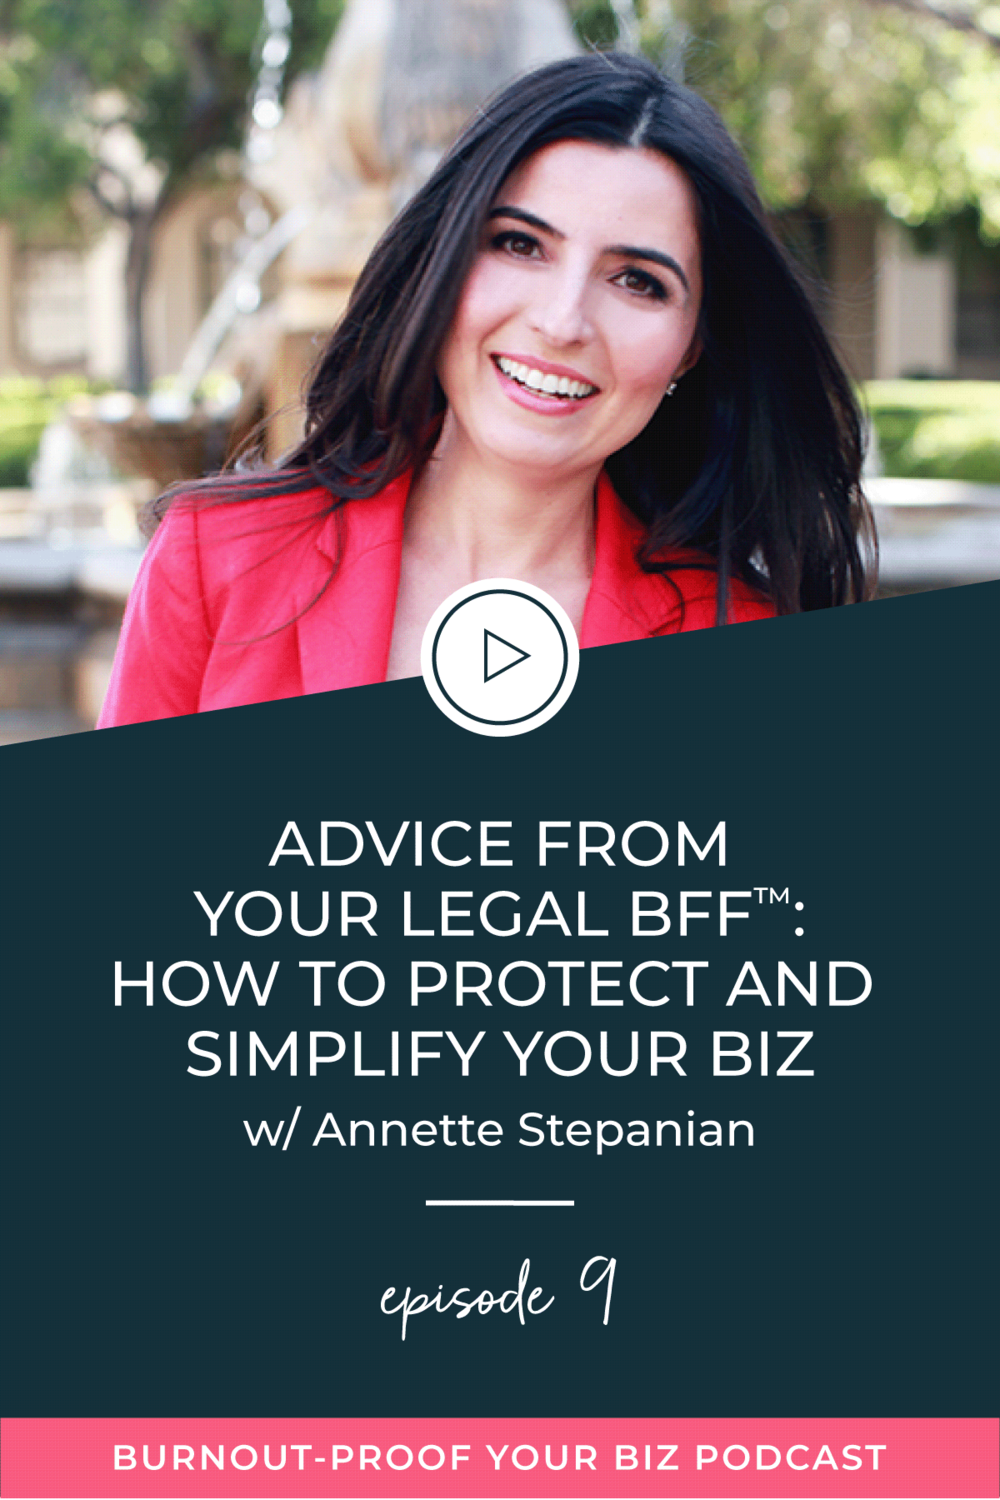 Burnout-Proof Your Biz Podcast with Chelsea B Foster | Episode 009 - Advice From Your Legal BFF™: How to Protect and Simplify Your Biz w/ Annette Stepanian | Learn how to run your biz and live your dream life on your own terms without the fear of burnout.